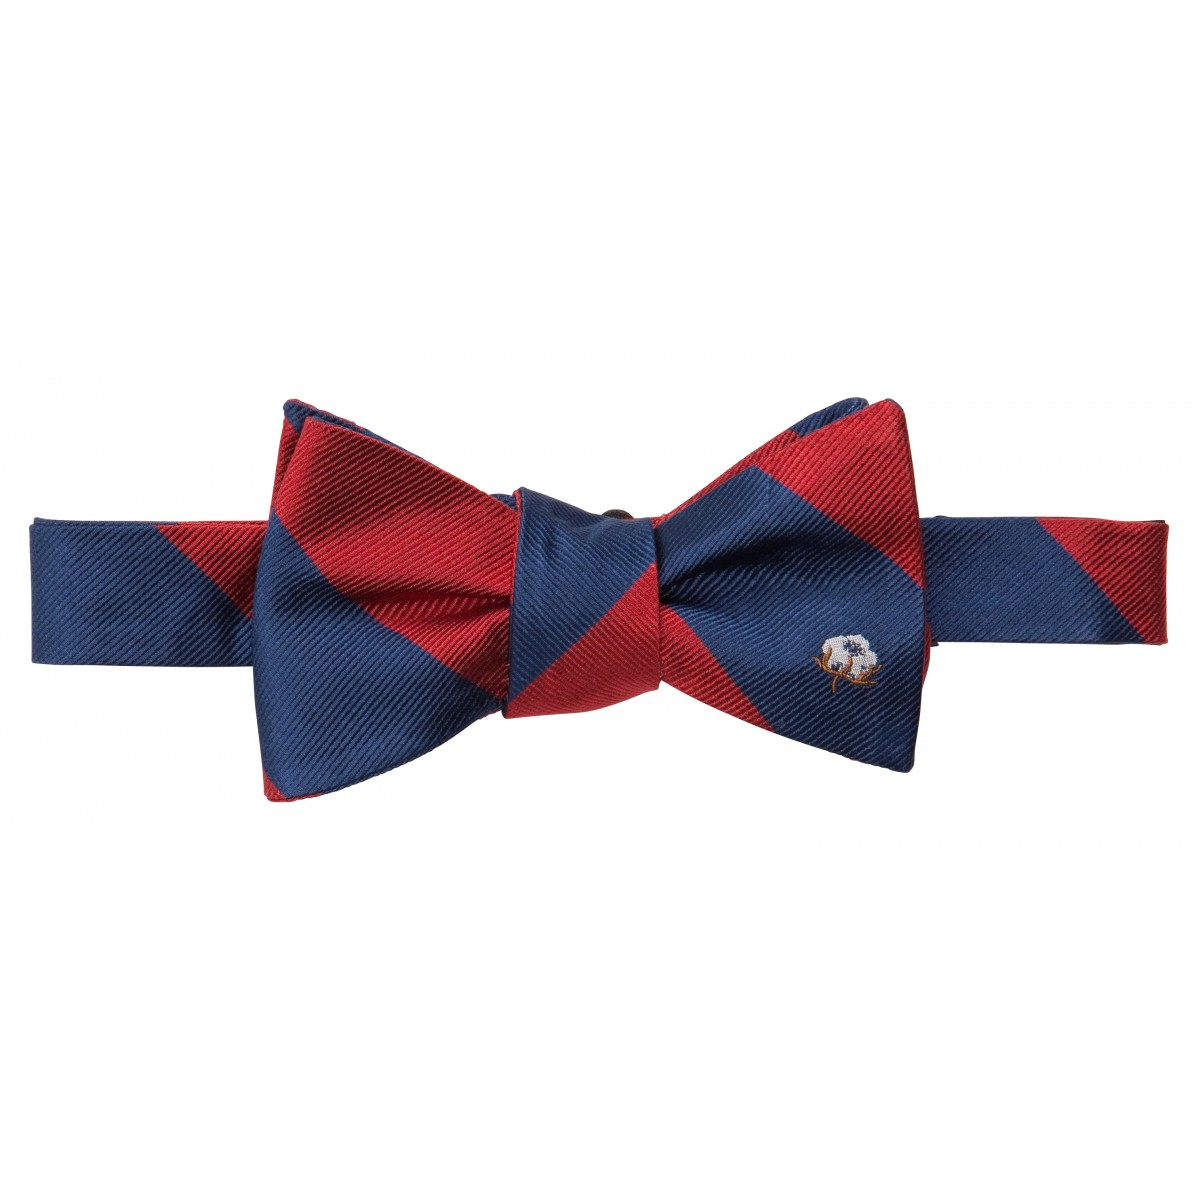 Cotton Boll Bow: Red & Navy